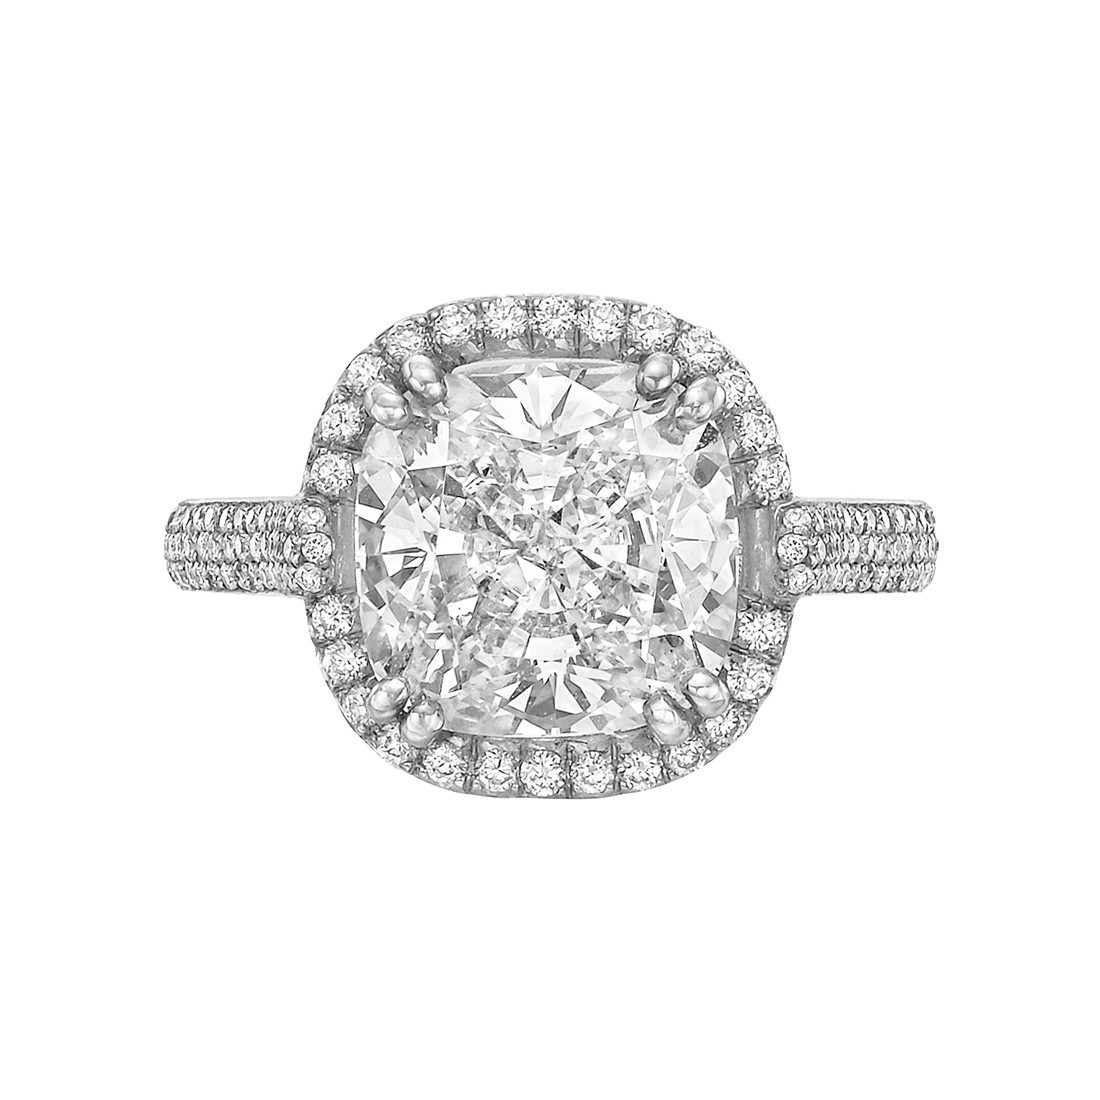 4.20 Carat Cushion-Cut Diamond Ring